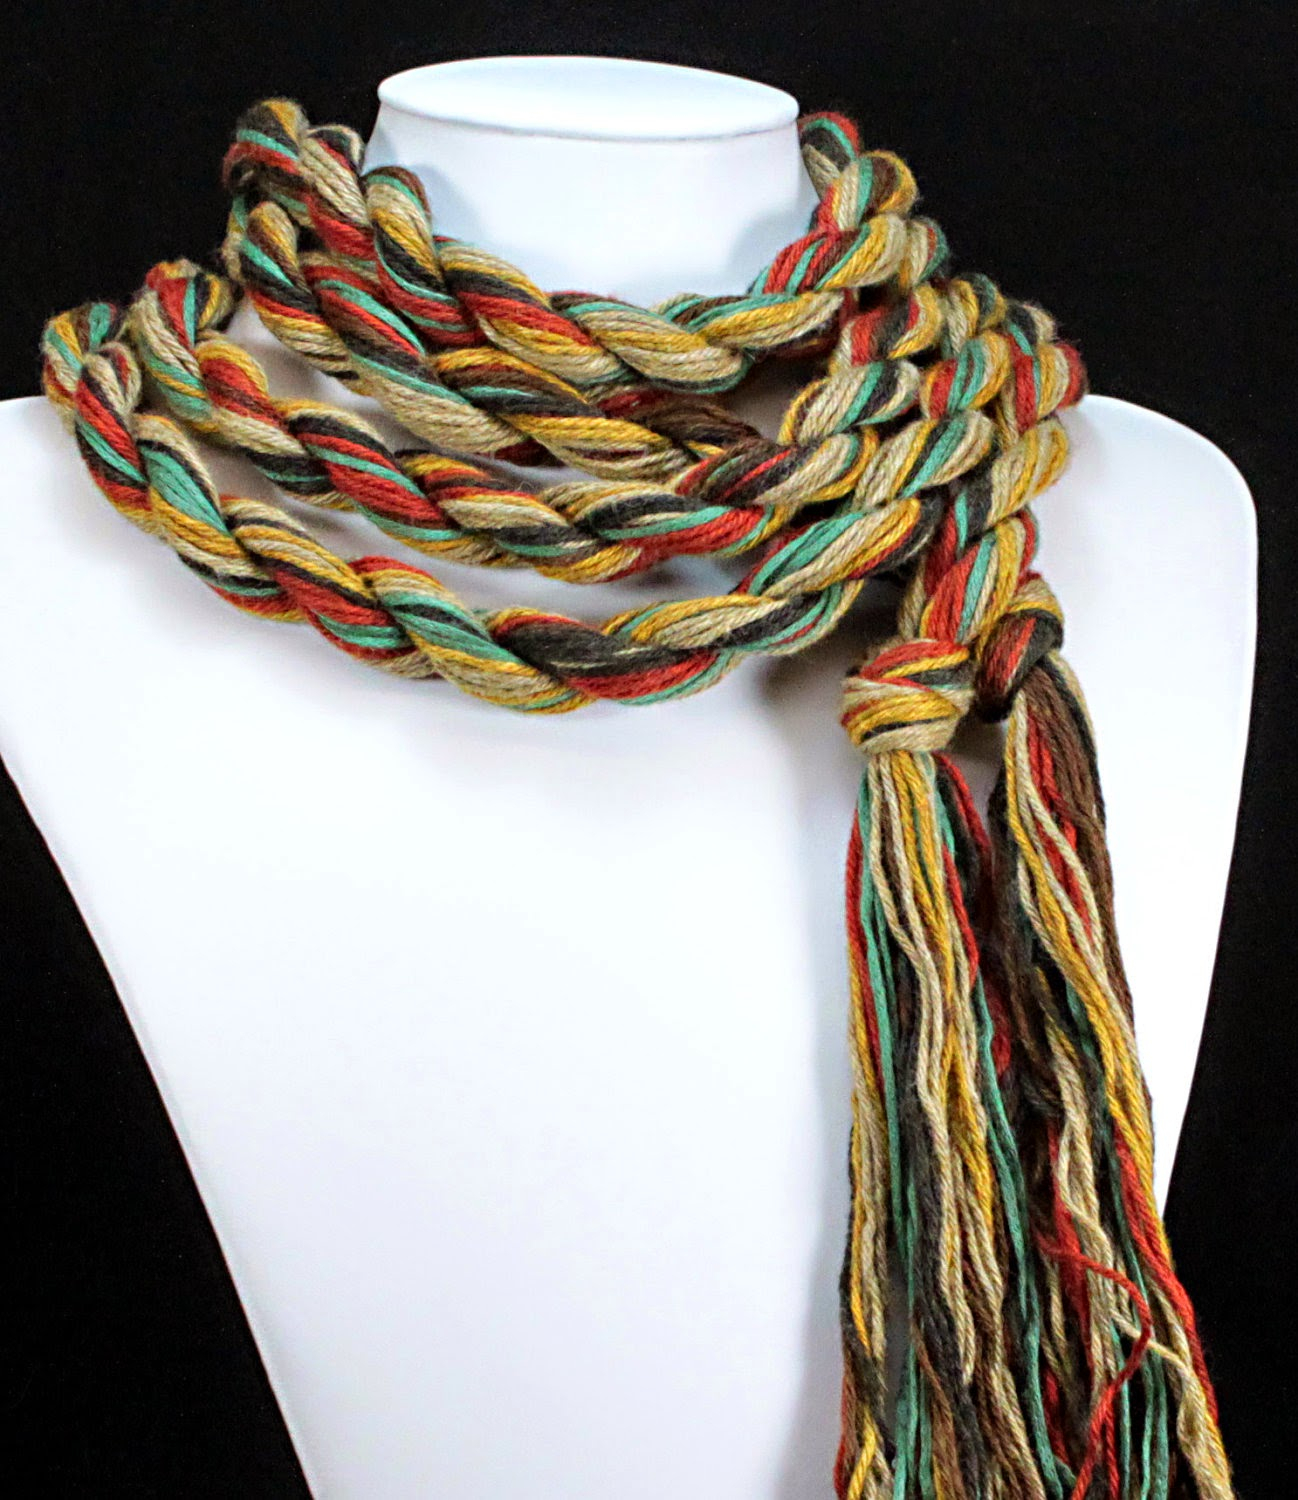 https://www.etsy.com/listing/77468725/skinny-scarf-super-long-vegan-eco